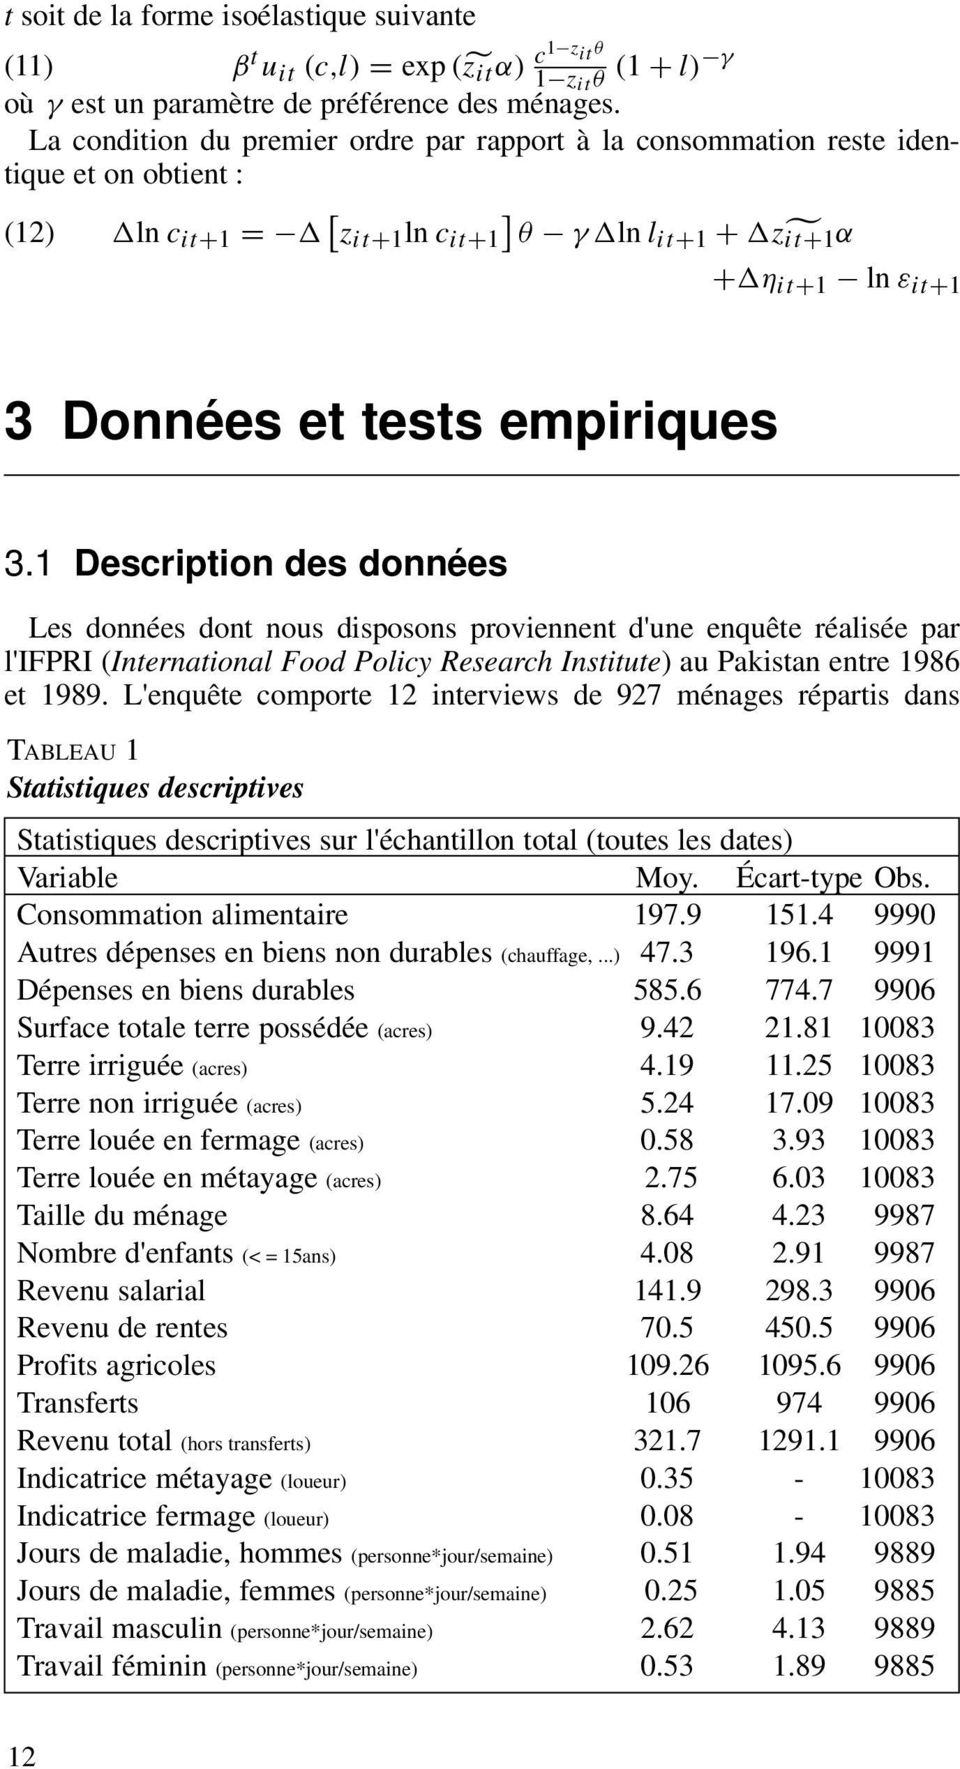 empiriques 3.1 Description des données Les données dont nous disposons proviennent d'une enquête réalisée par l'ifpri International Food Policy Research Institute) au Pakistan entre 1986 et 1989.